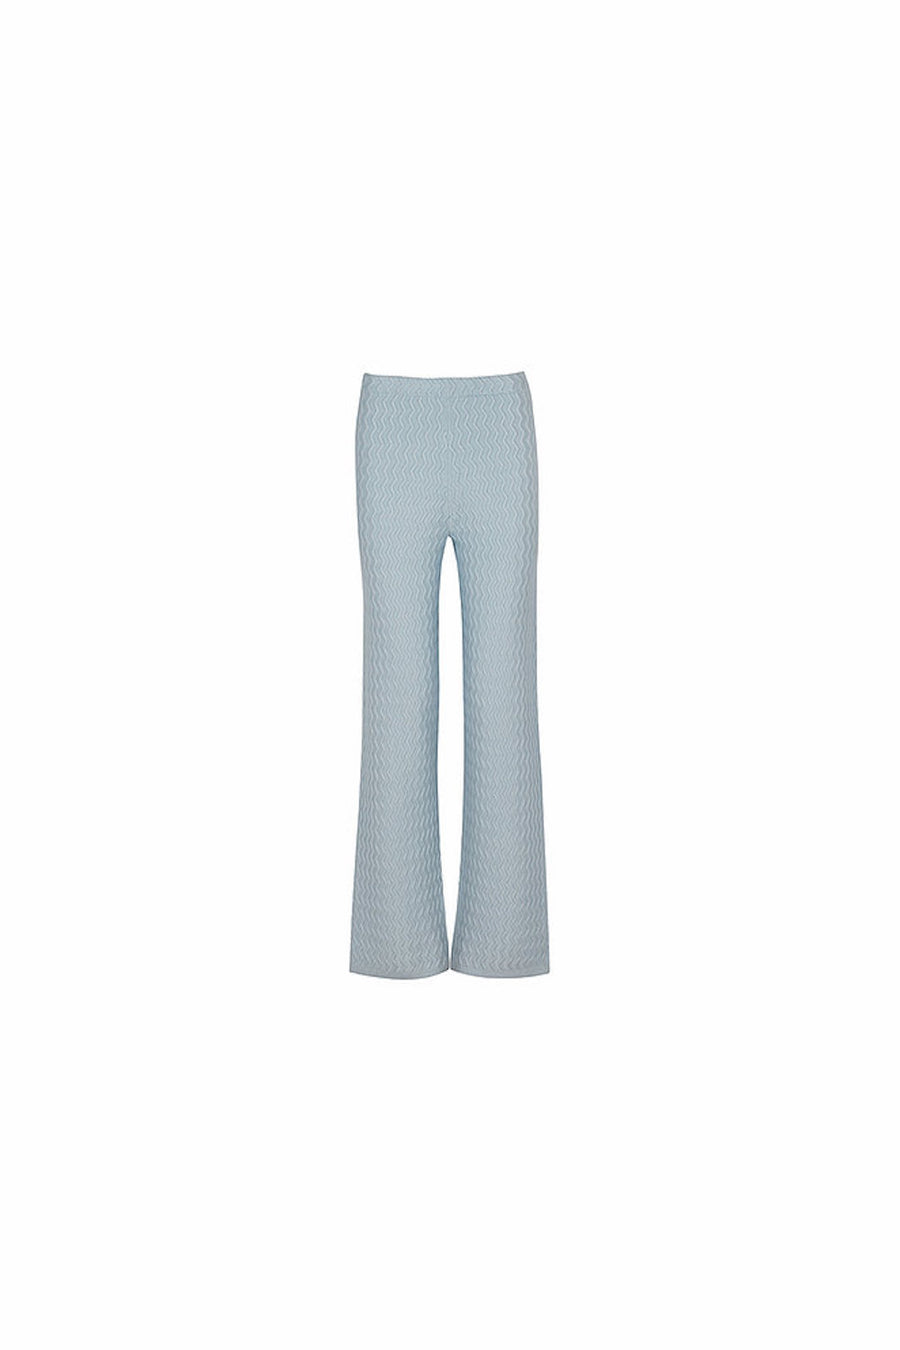 Pacific Pants | Scuba Blue | Bottoms NZ | HOUSE OF SUNNY NZ | Black Box Boutique Auckland | Womens Fashion NZ